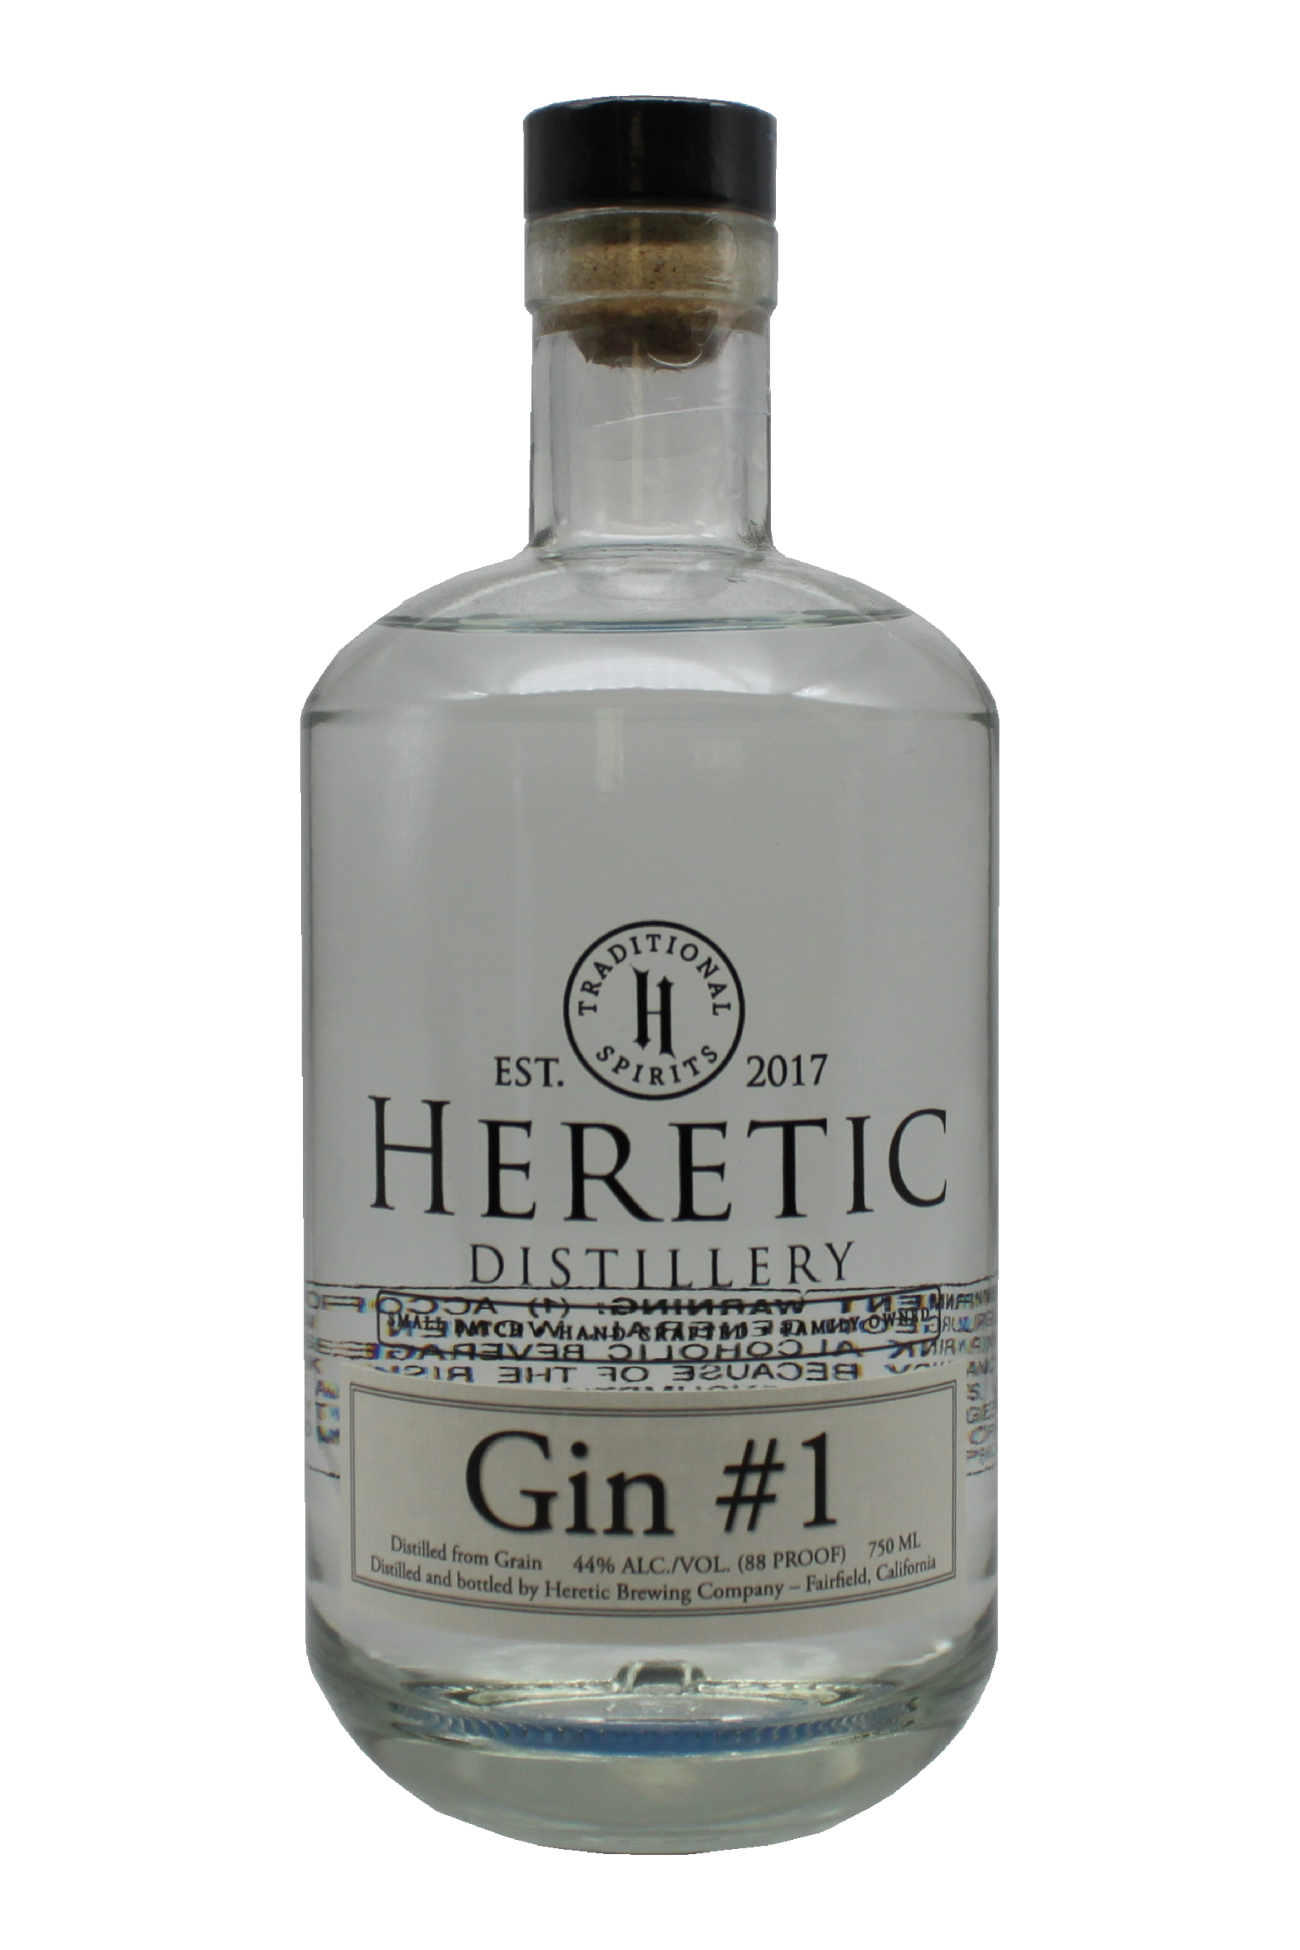 Botanical Gin #1 bottle linked to details about vodka page